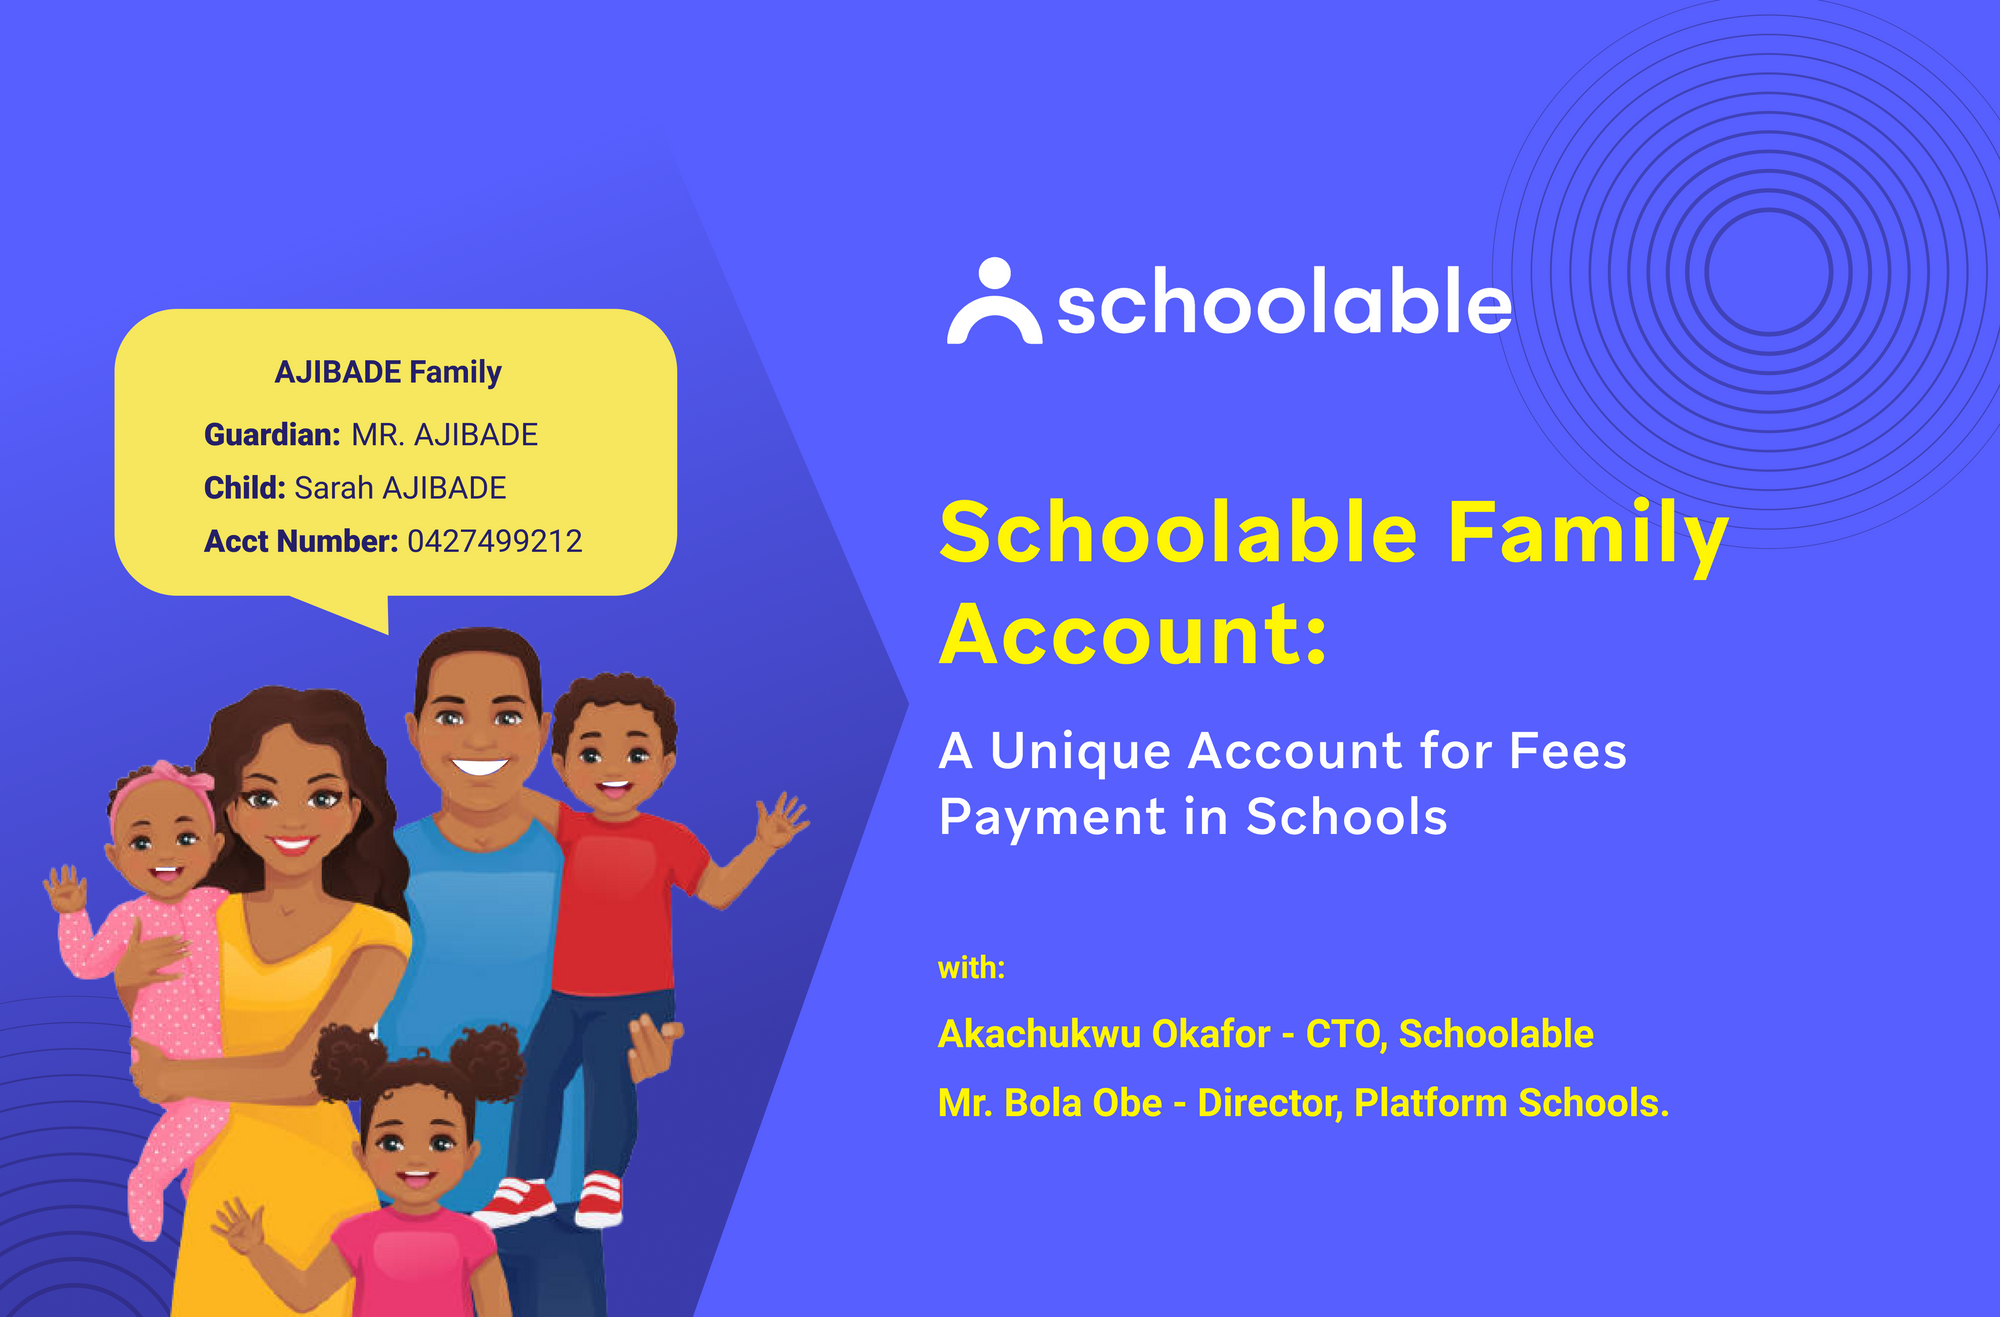 Schoolable Family Account: A Unique Account for Fees Payment in Schools